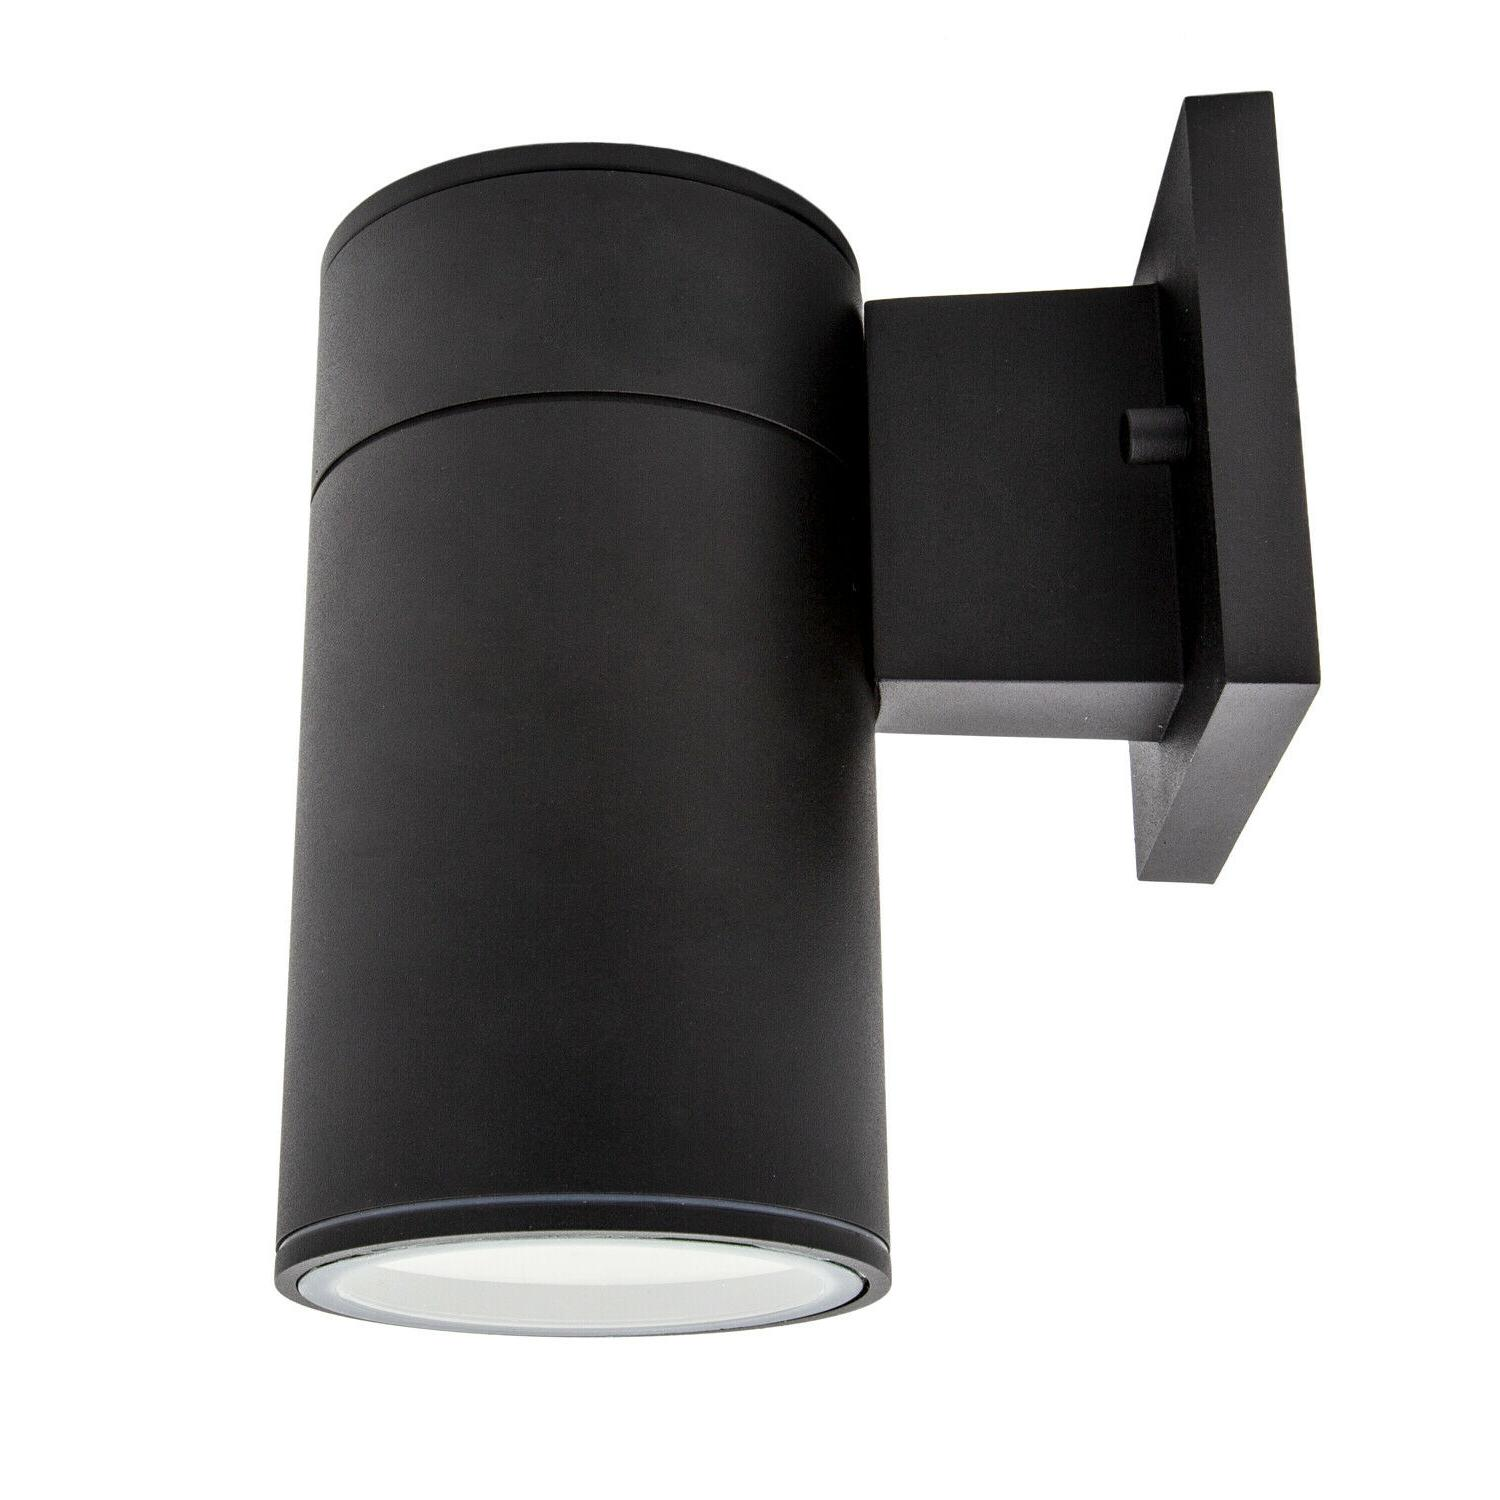 Maxxima Cylinder Outdoor Wall Light 840 Photocell